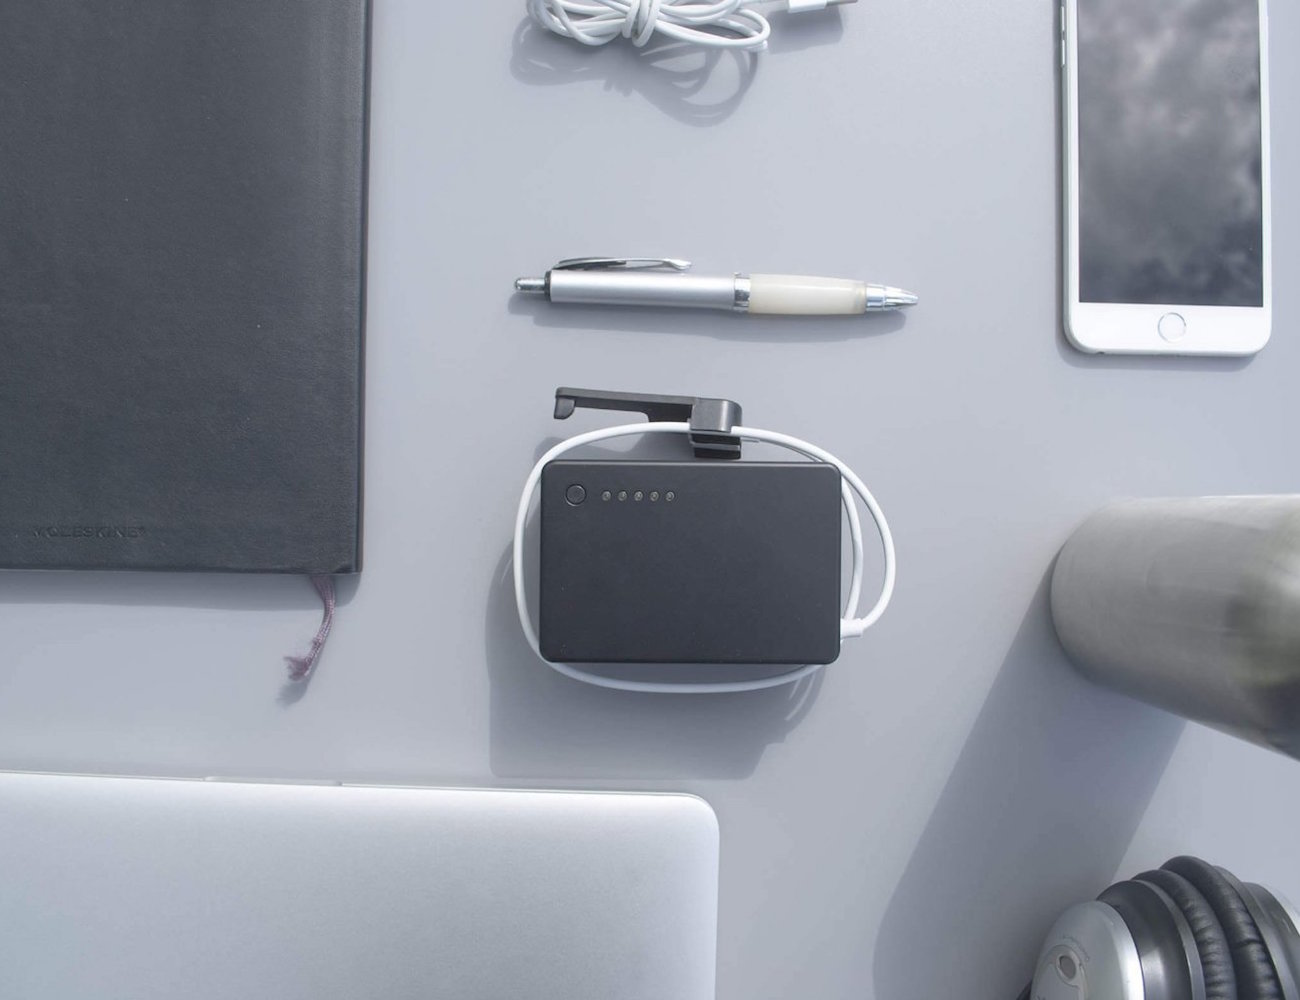 BatteryBox+%26%238211%3B+External+Portable+MacBook+Battery